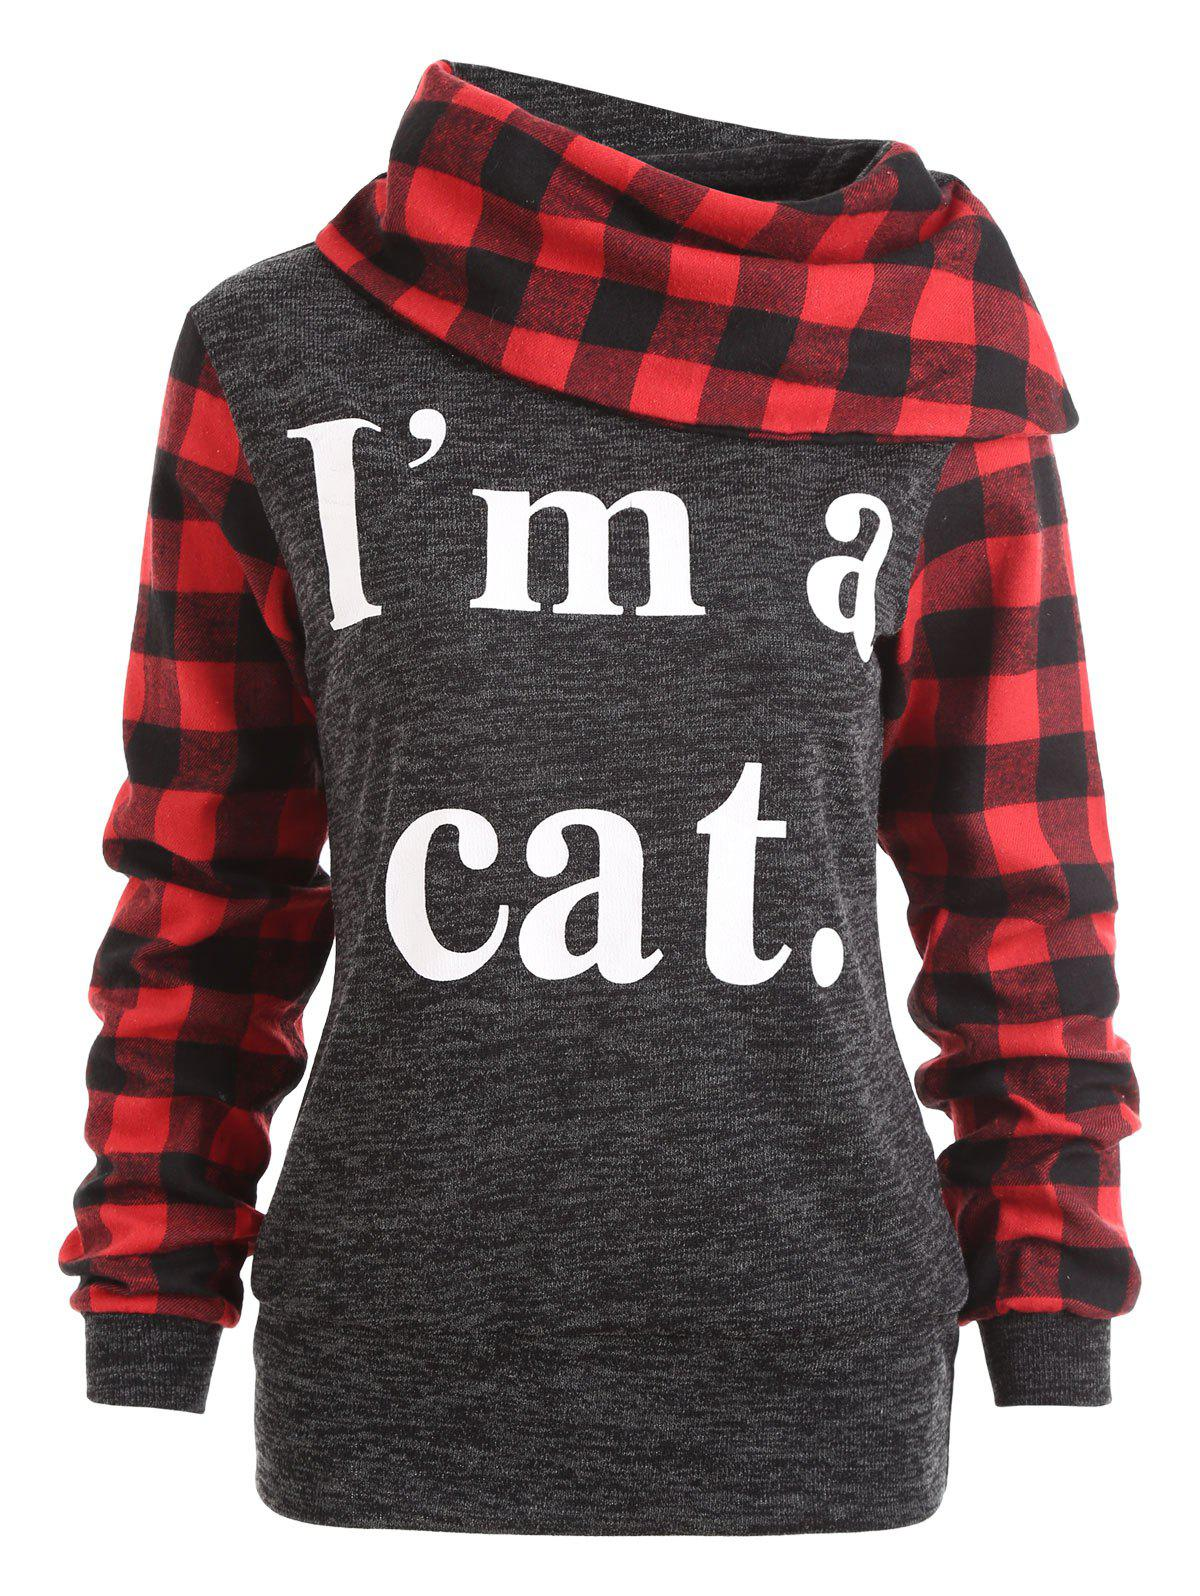 I am A Cat Plaid Insert Sweatshirt подвесная люстра ambiente alicante 8888 3 pb tear drop